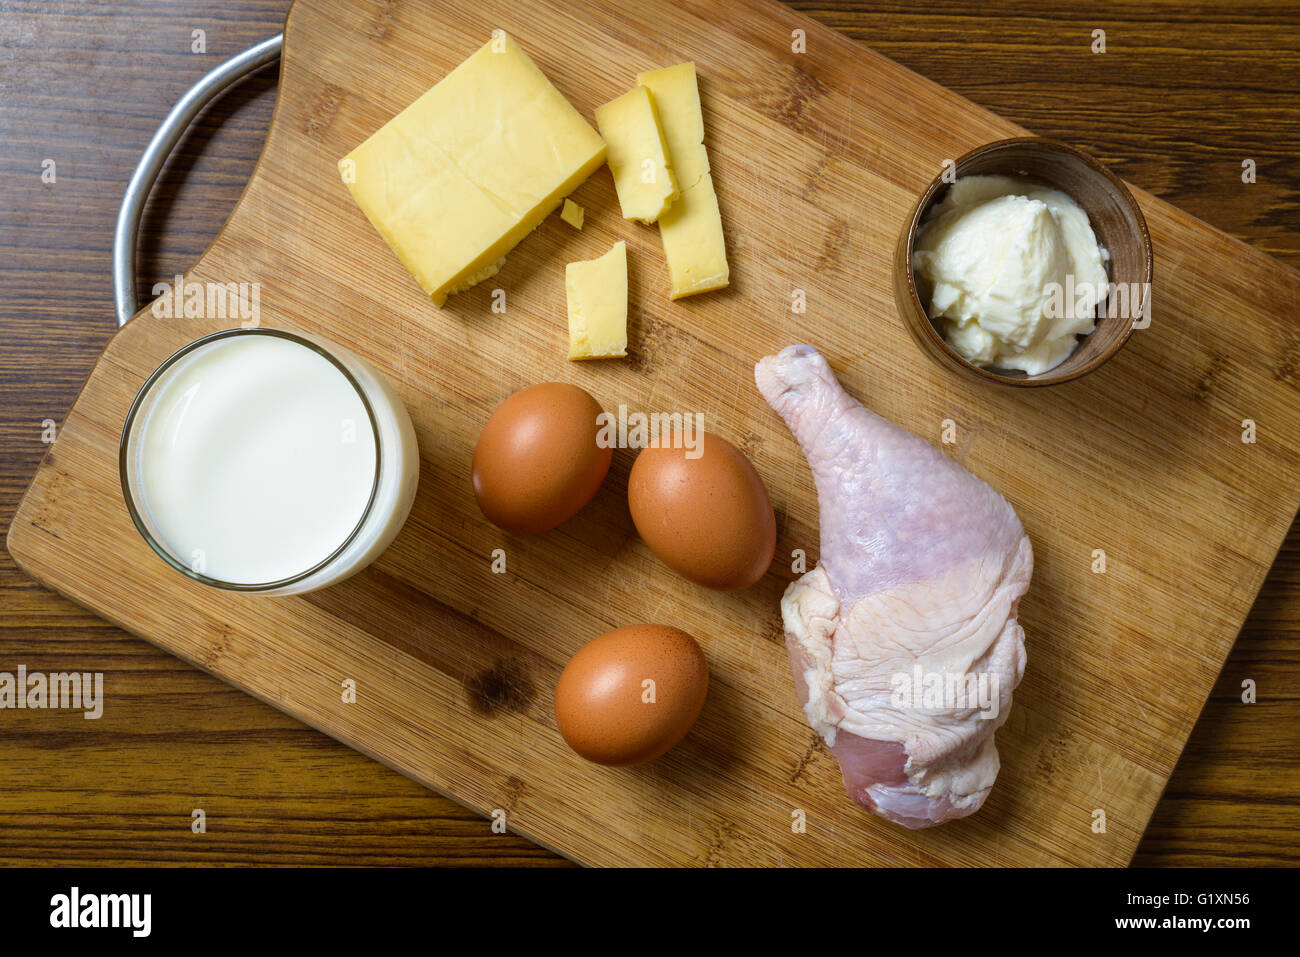 Protein rich ingredients on a wooden board - Stock Image